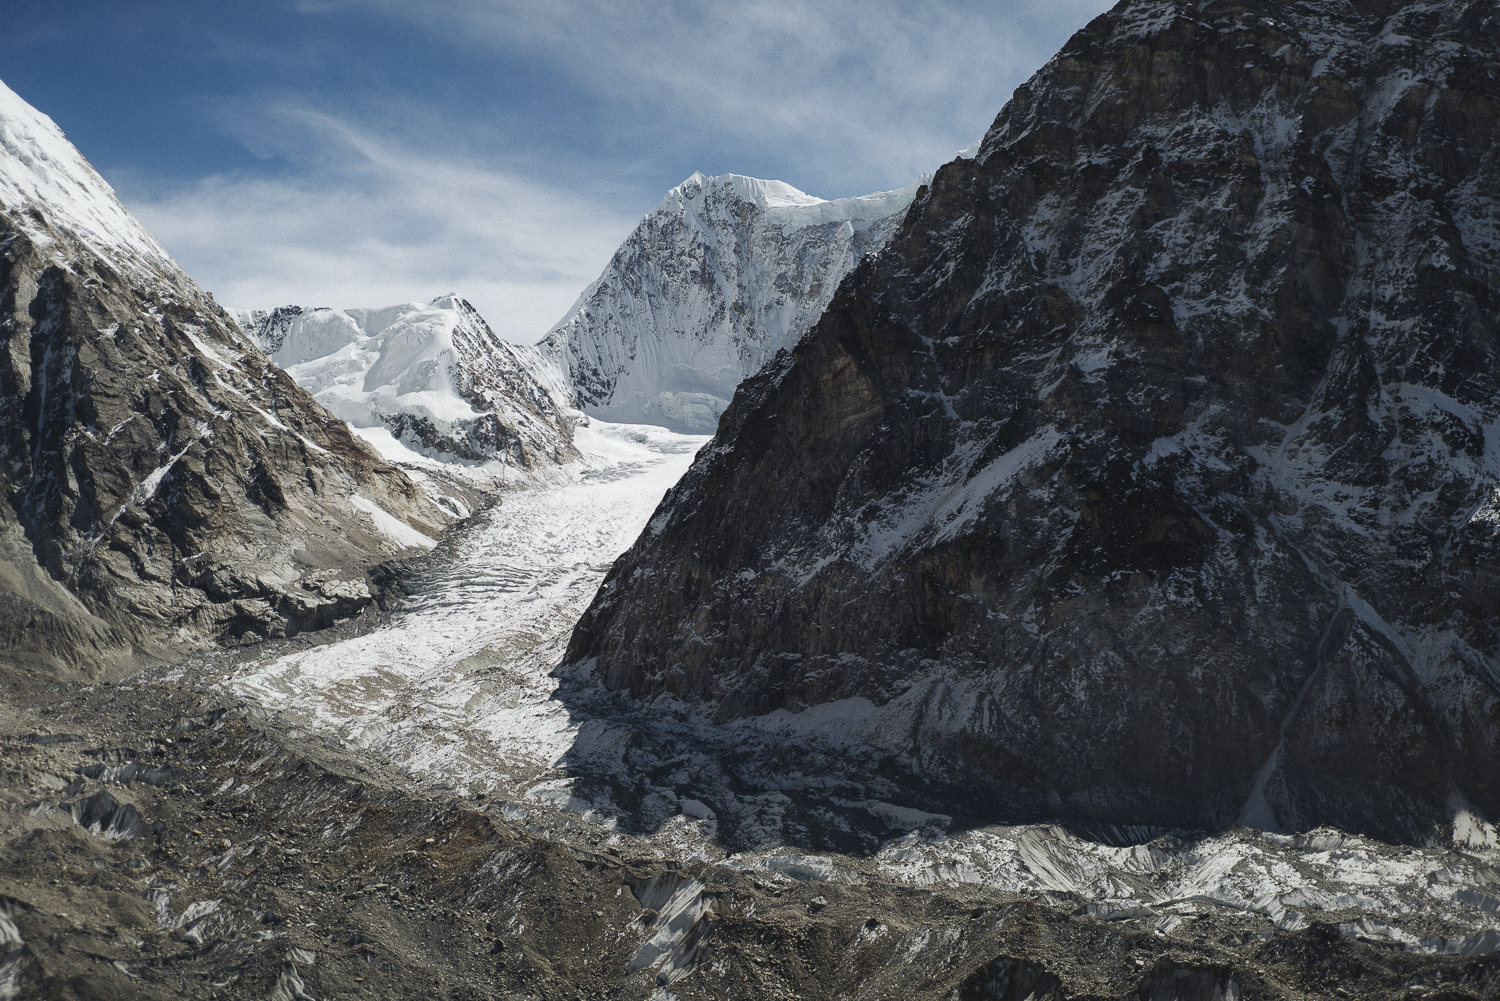 This photo shows Gimmigela East (7005m) from a vantage point above the team's base camp. Auer wrote, Our plan of putting up a base camp with a direct view to the mountain was shut down by our porters. They all stopped in Camp Pangpema, the base camp for Kangchenjunga (8586m). We convinced five of them to shuttle up our loads a little bit higher during a few days. [Photo] Elias Holzkenecht